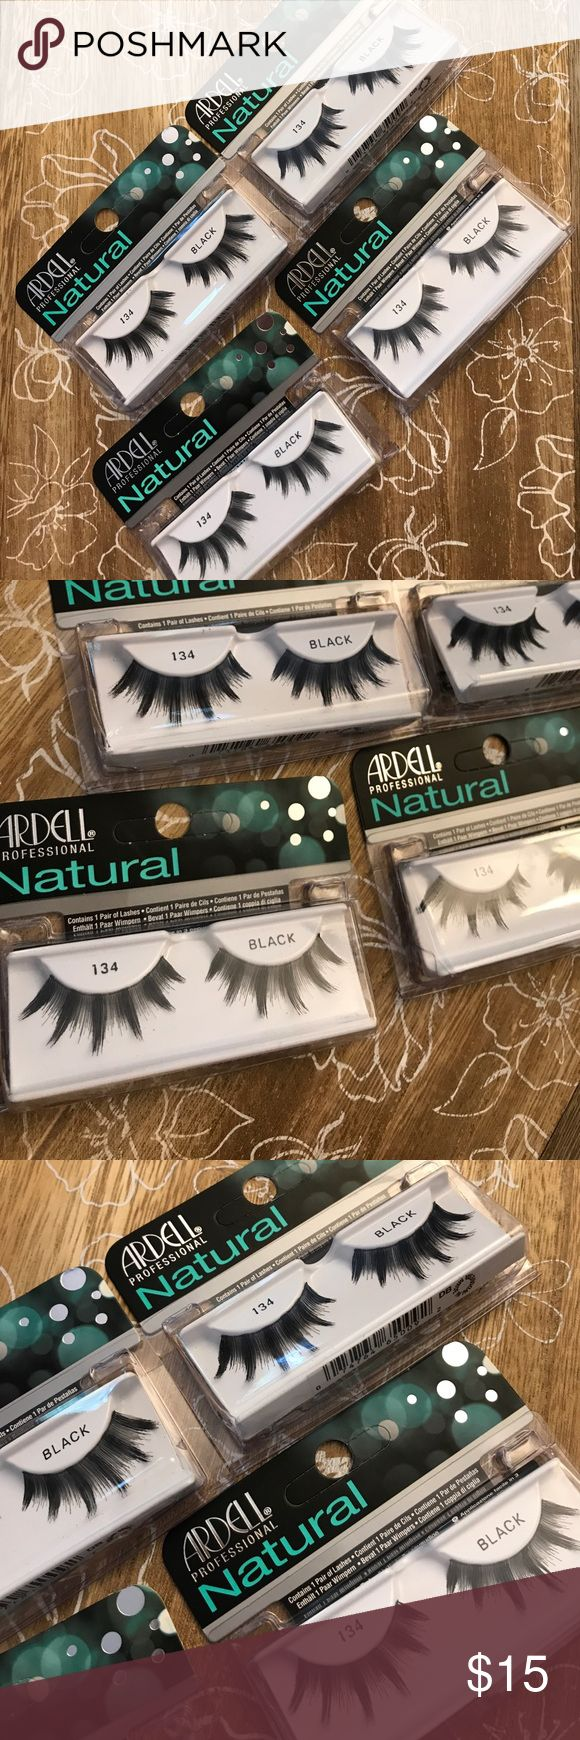 Ardell professional natural 134 Black eye lashes The most popular lashes are lightweight, reusable, easy to apply, and the ultimate in comfort. They're made from sterilized, 100% human hair so they look and feel like your own. Ideal for first-time users! (( 4 pack - new in box )) STYLE:  Glamour SHAPE:  Large Eyes  Deep Set Eyes ardell Makeup False Eyelashes